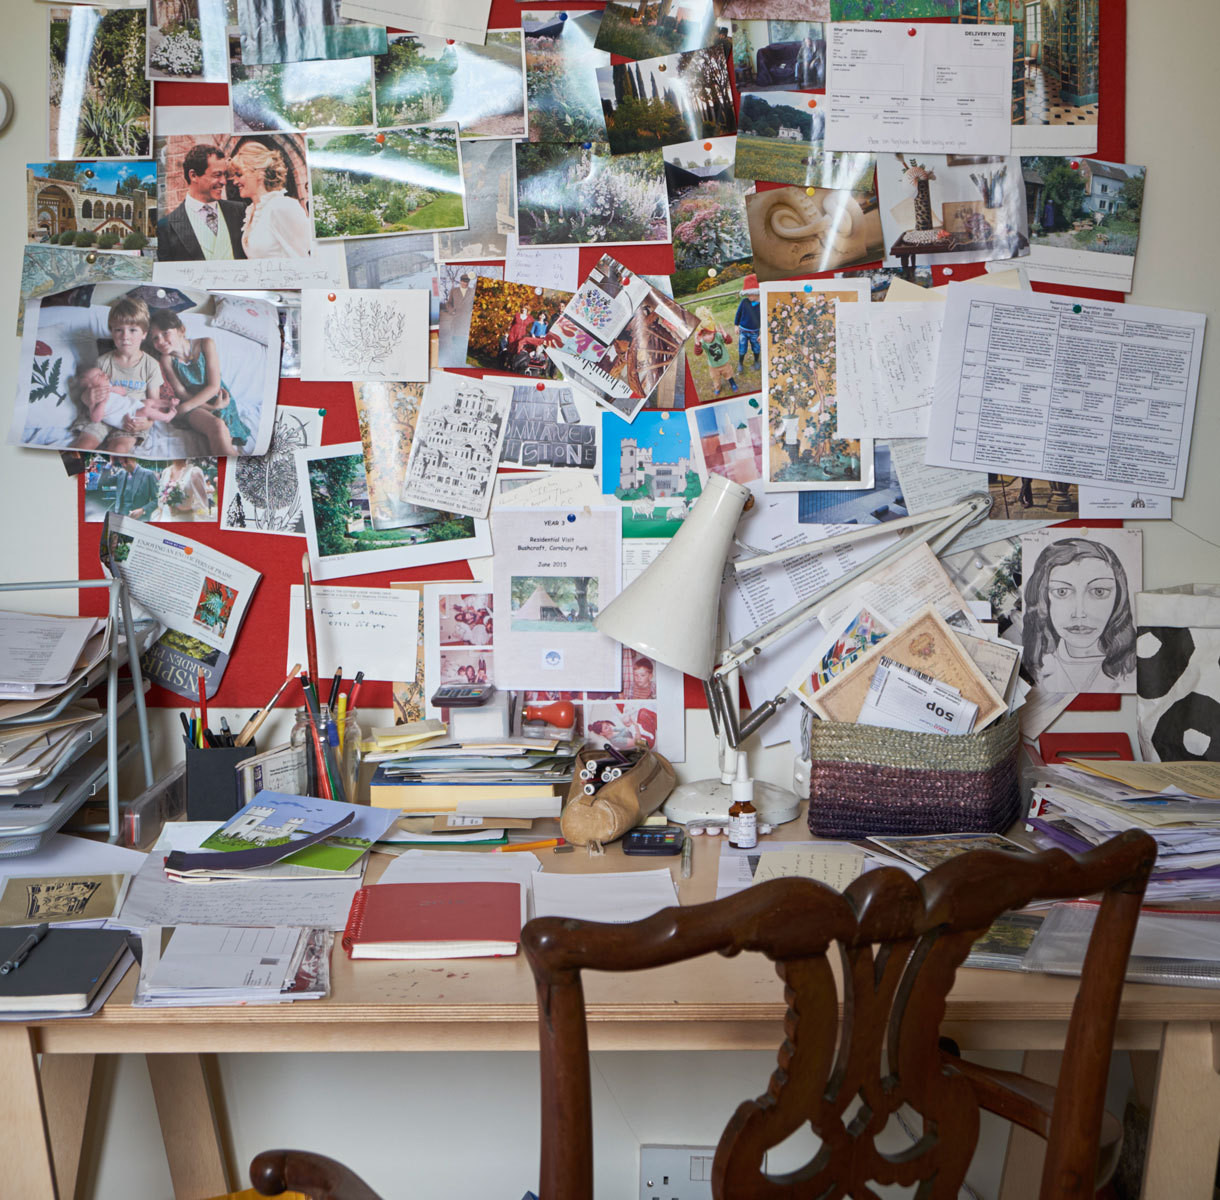 The pin board above FitzGerald's desk displays a wealth of memorabilia.